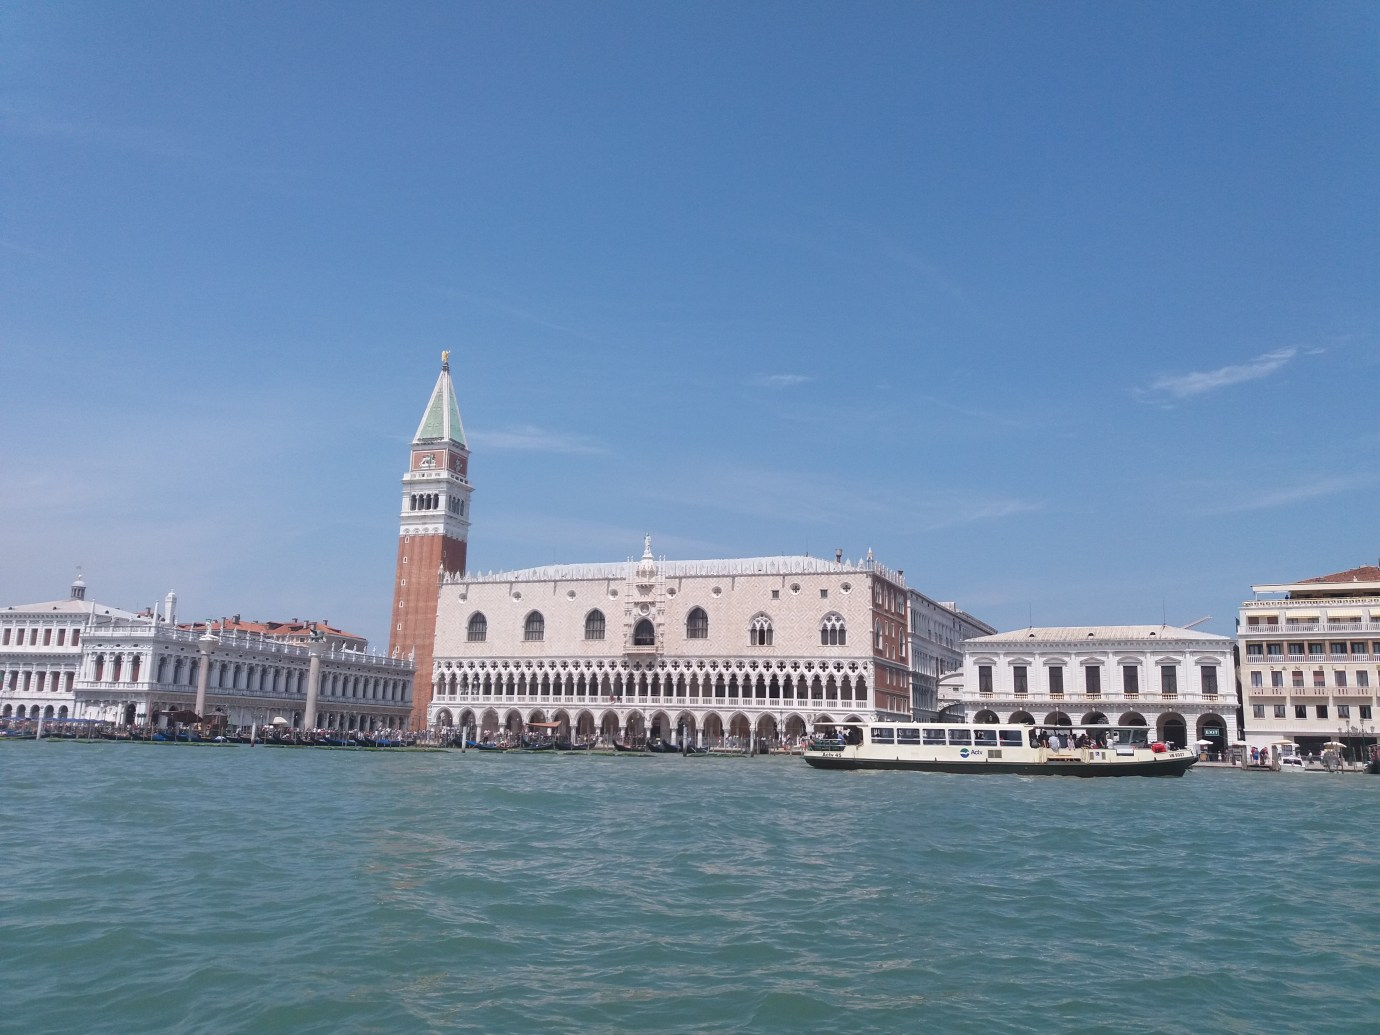 Venezia city view from the water